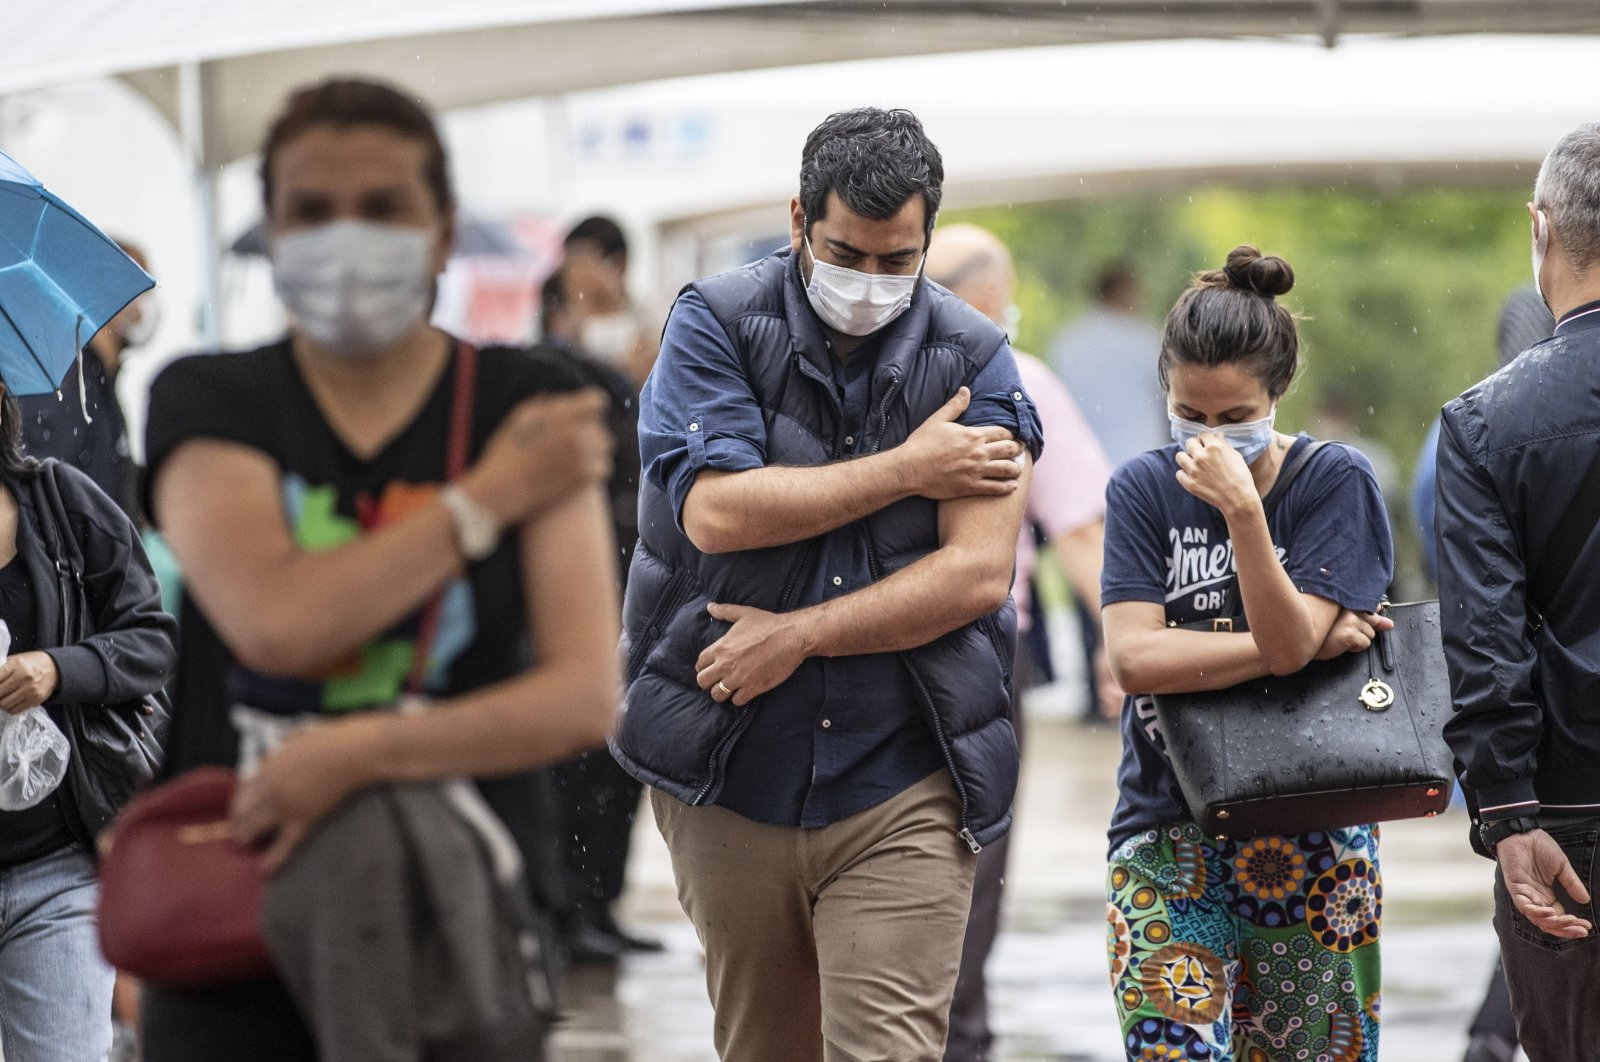 Citizens leave the Professor Dr. Feriha Öz Emergency Hospital in Istanbul after receiving their COVID-19 vaccines, Istanbul, Turkey, June 14, 2021. (AA Photo)